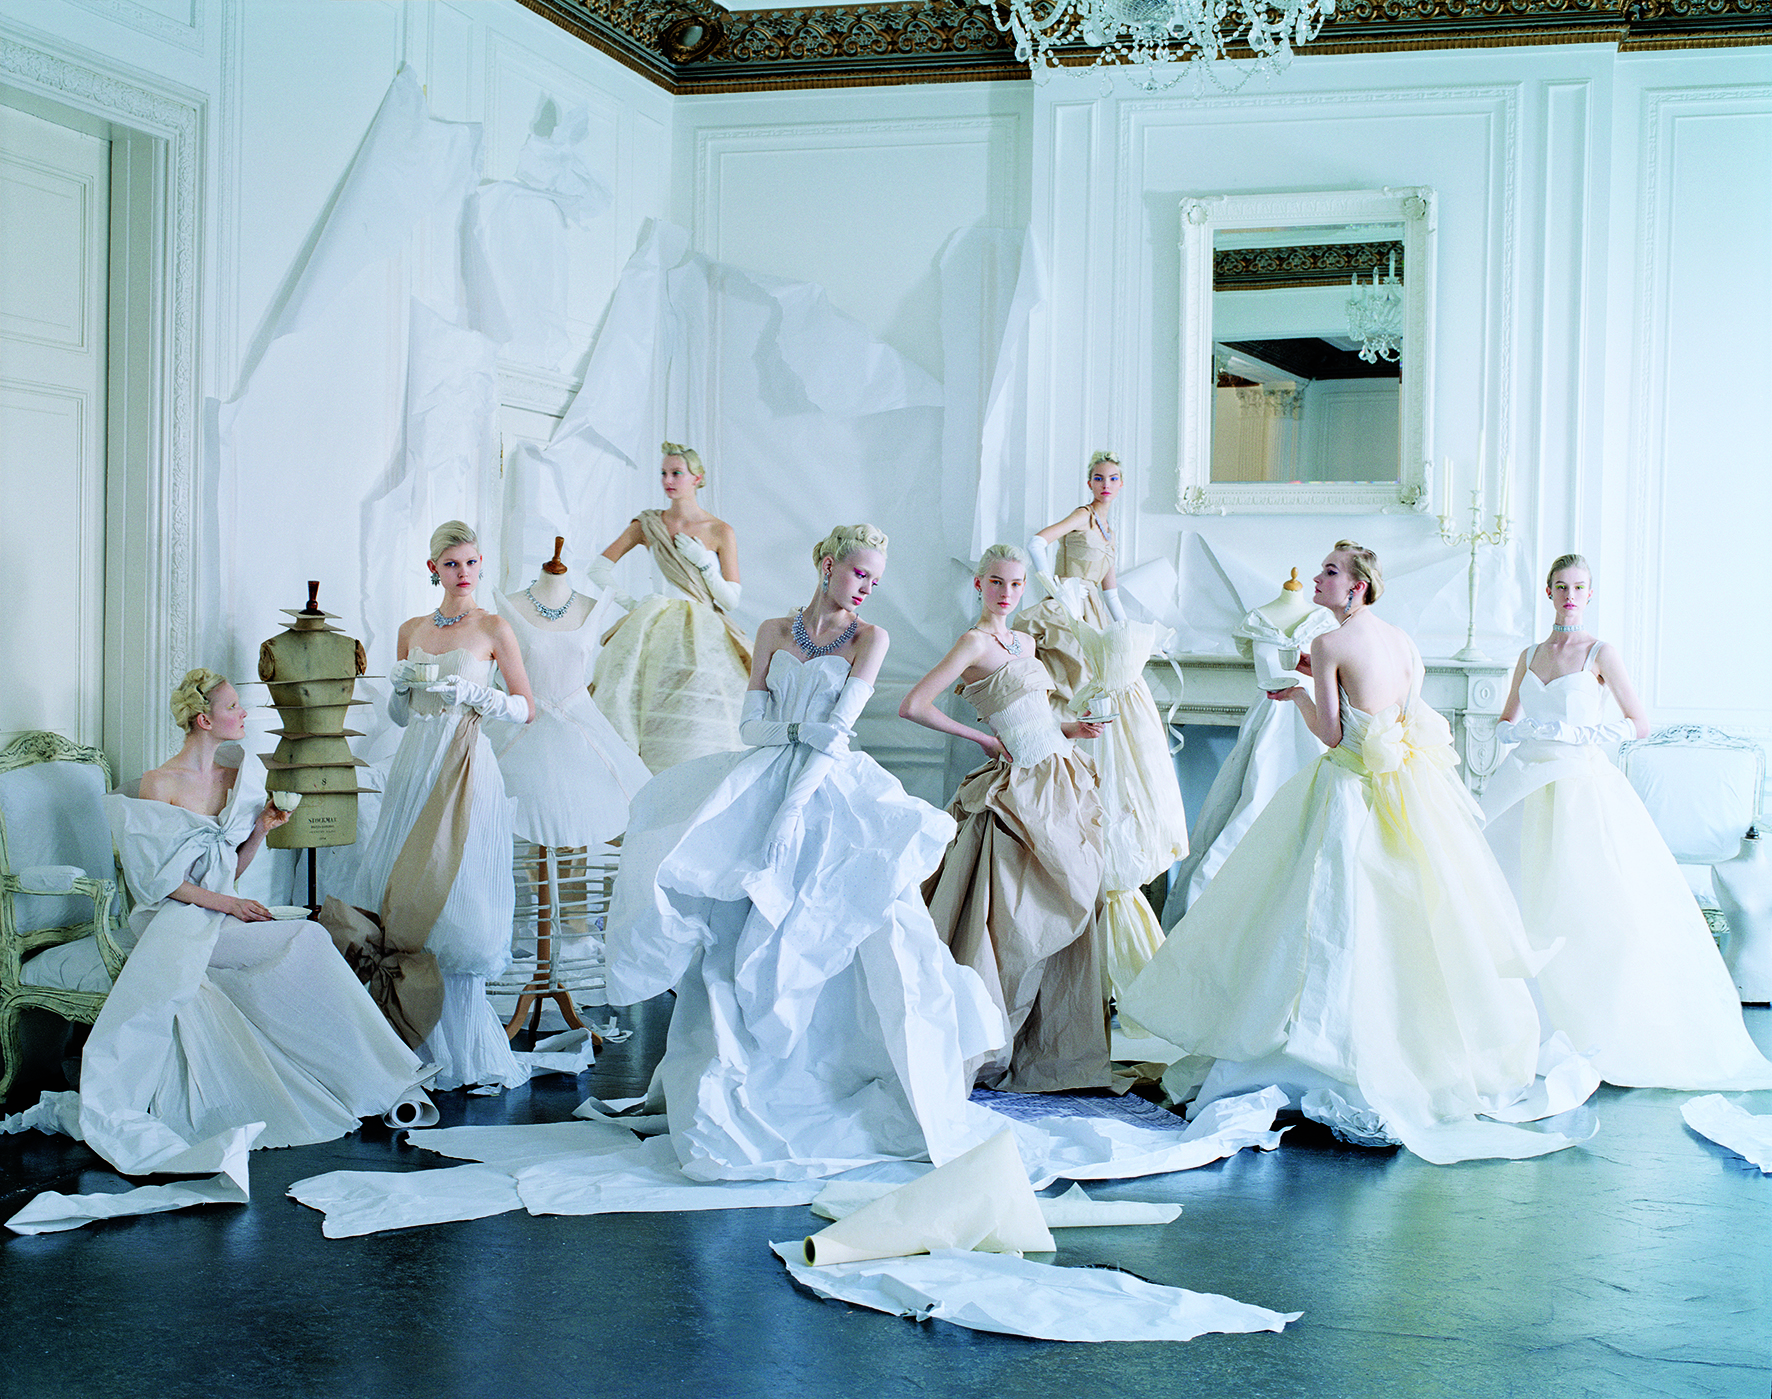 Tim Walker. Maja Salamon, Ola Rudnicka, Codie Young, Esmerelda Seay- Reynolds, Nastya Sten, Sasha Luss, Alexandra Kivimäki, and Alice Cornish in paper dresses and jewelry created by Rhea Thierstein; hair, Julien d'Ys; makeup, Lucia Pieroni; production design, Rhea Thierstein; London, May 2014. Courtesy The Condé Nast Publications (pages 336-7)